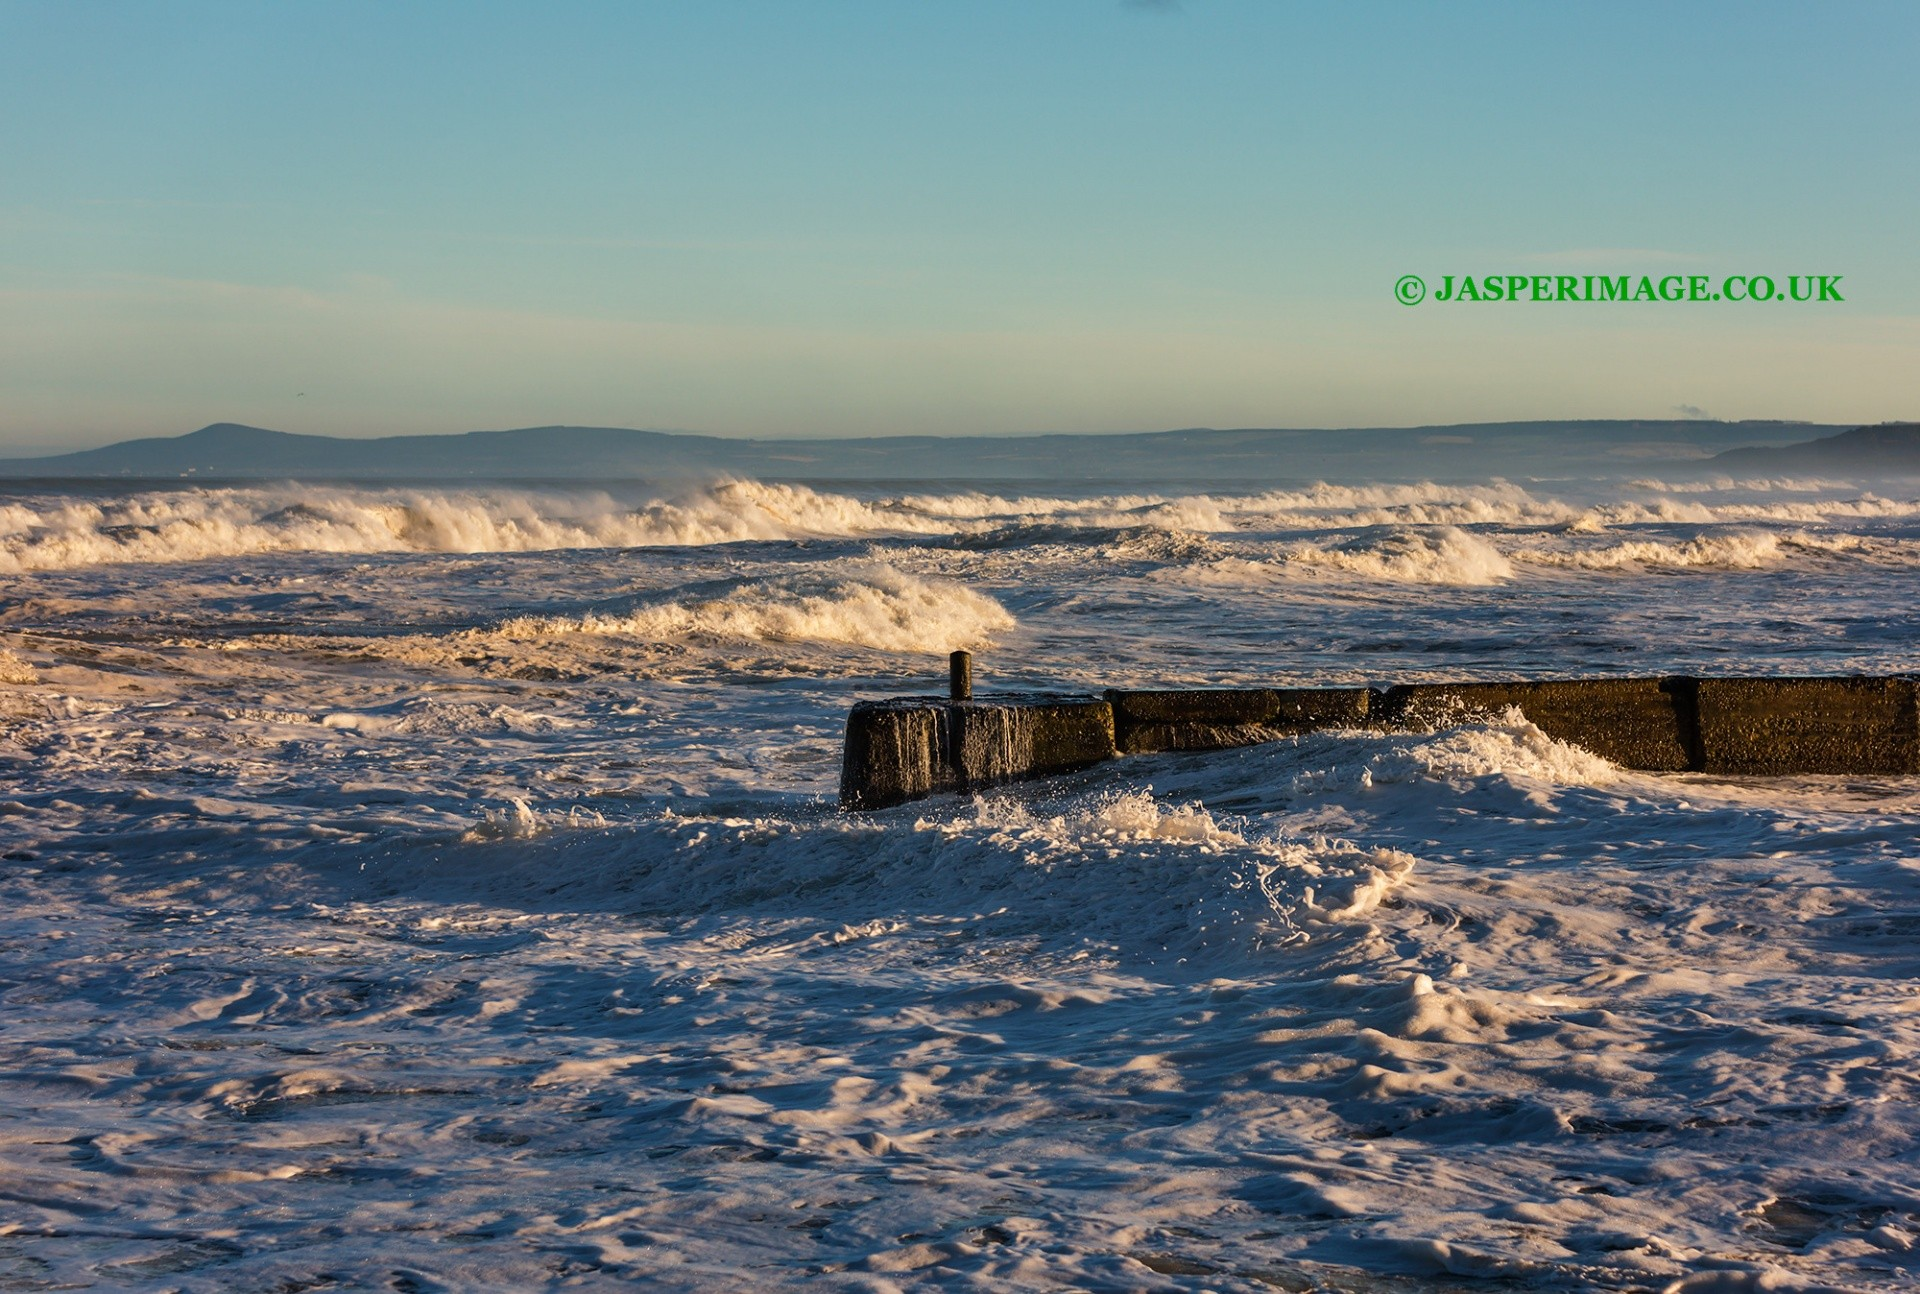 JASPERIMAGE's photo of Lossiemouth